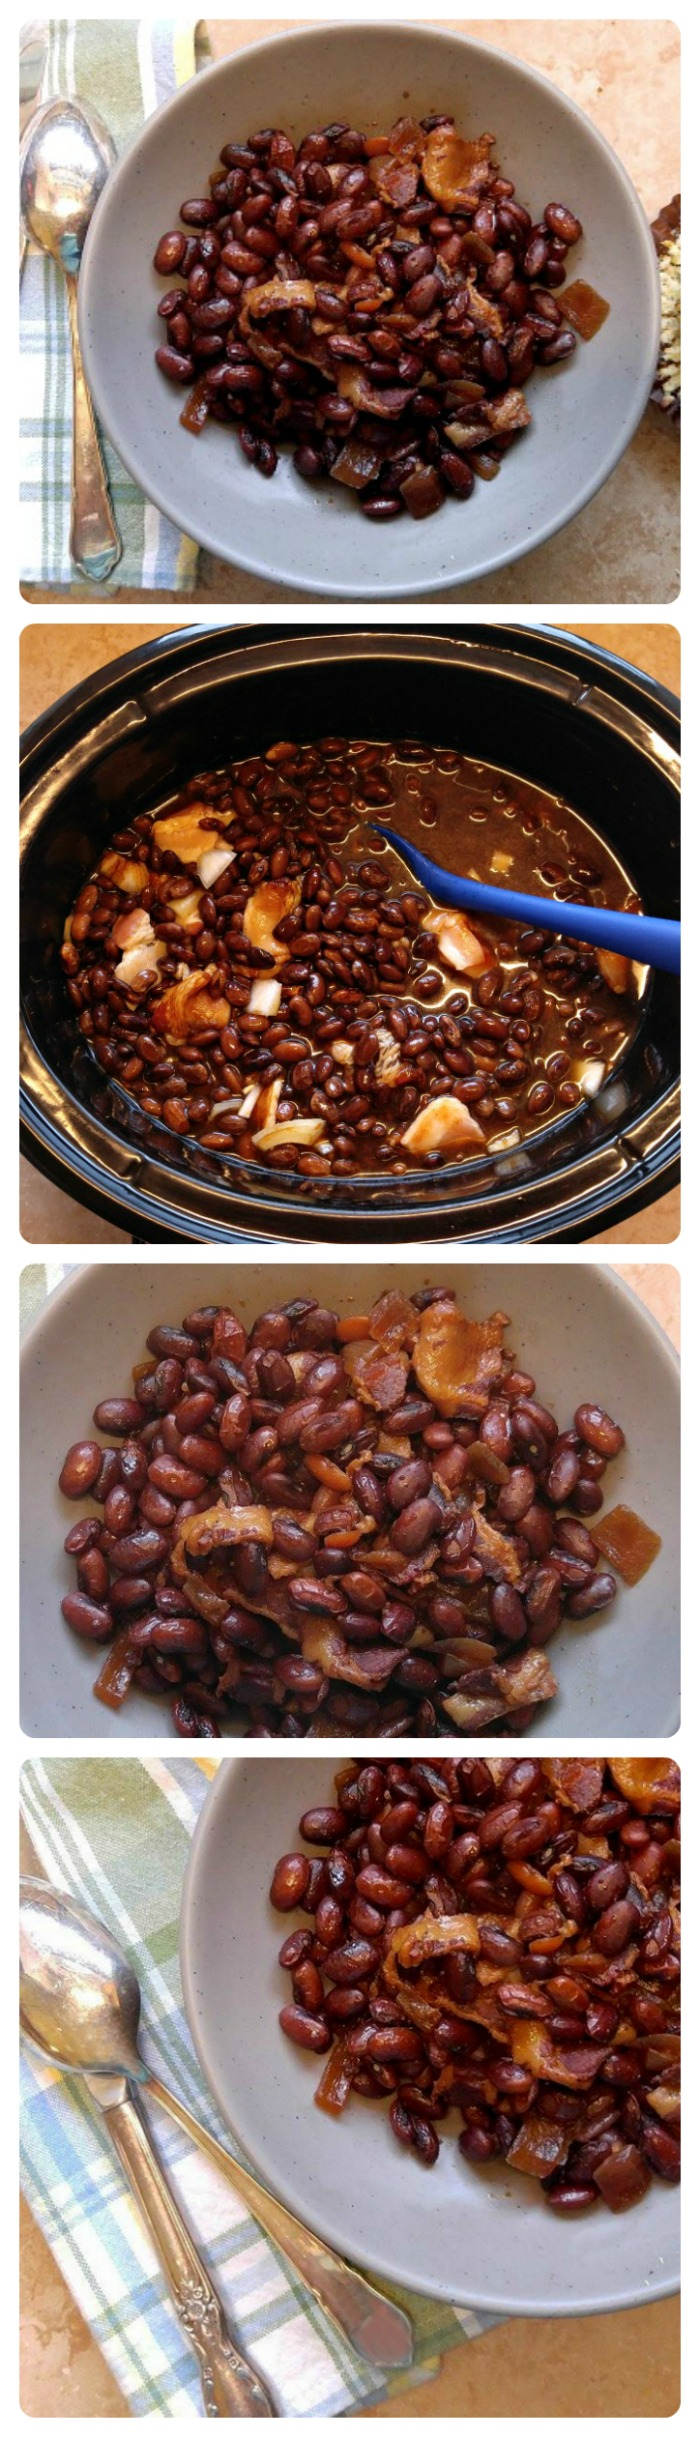 These Slow Cooker Boston Baked Beans are home cooked comfort food at its best